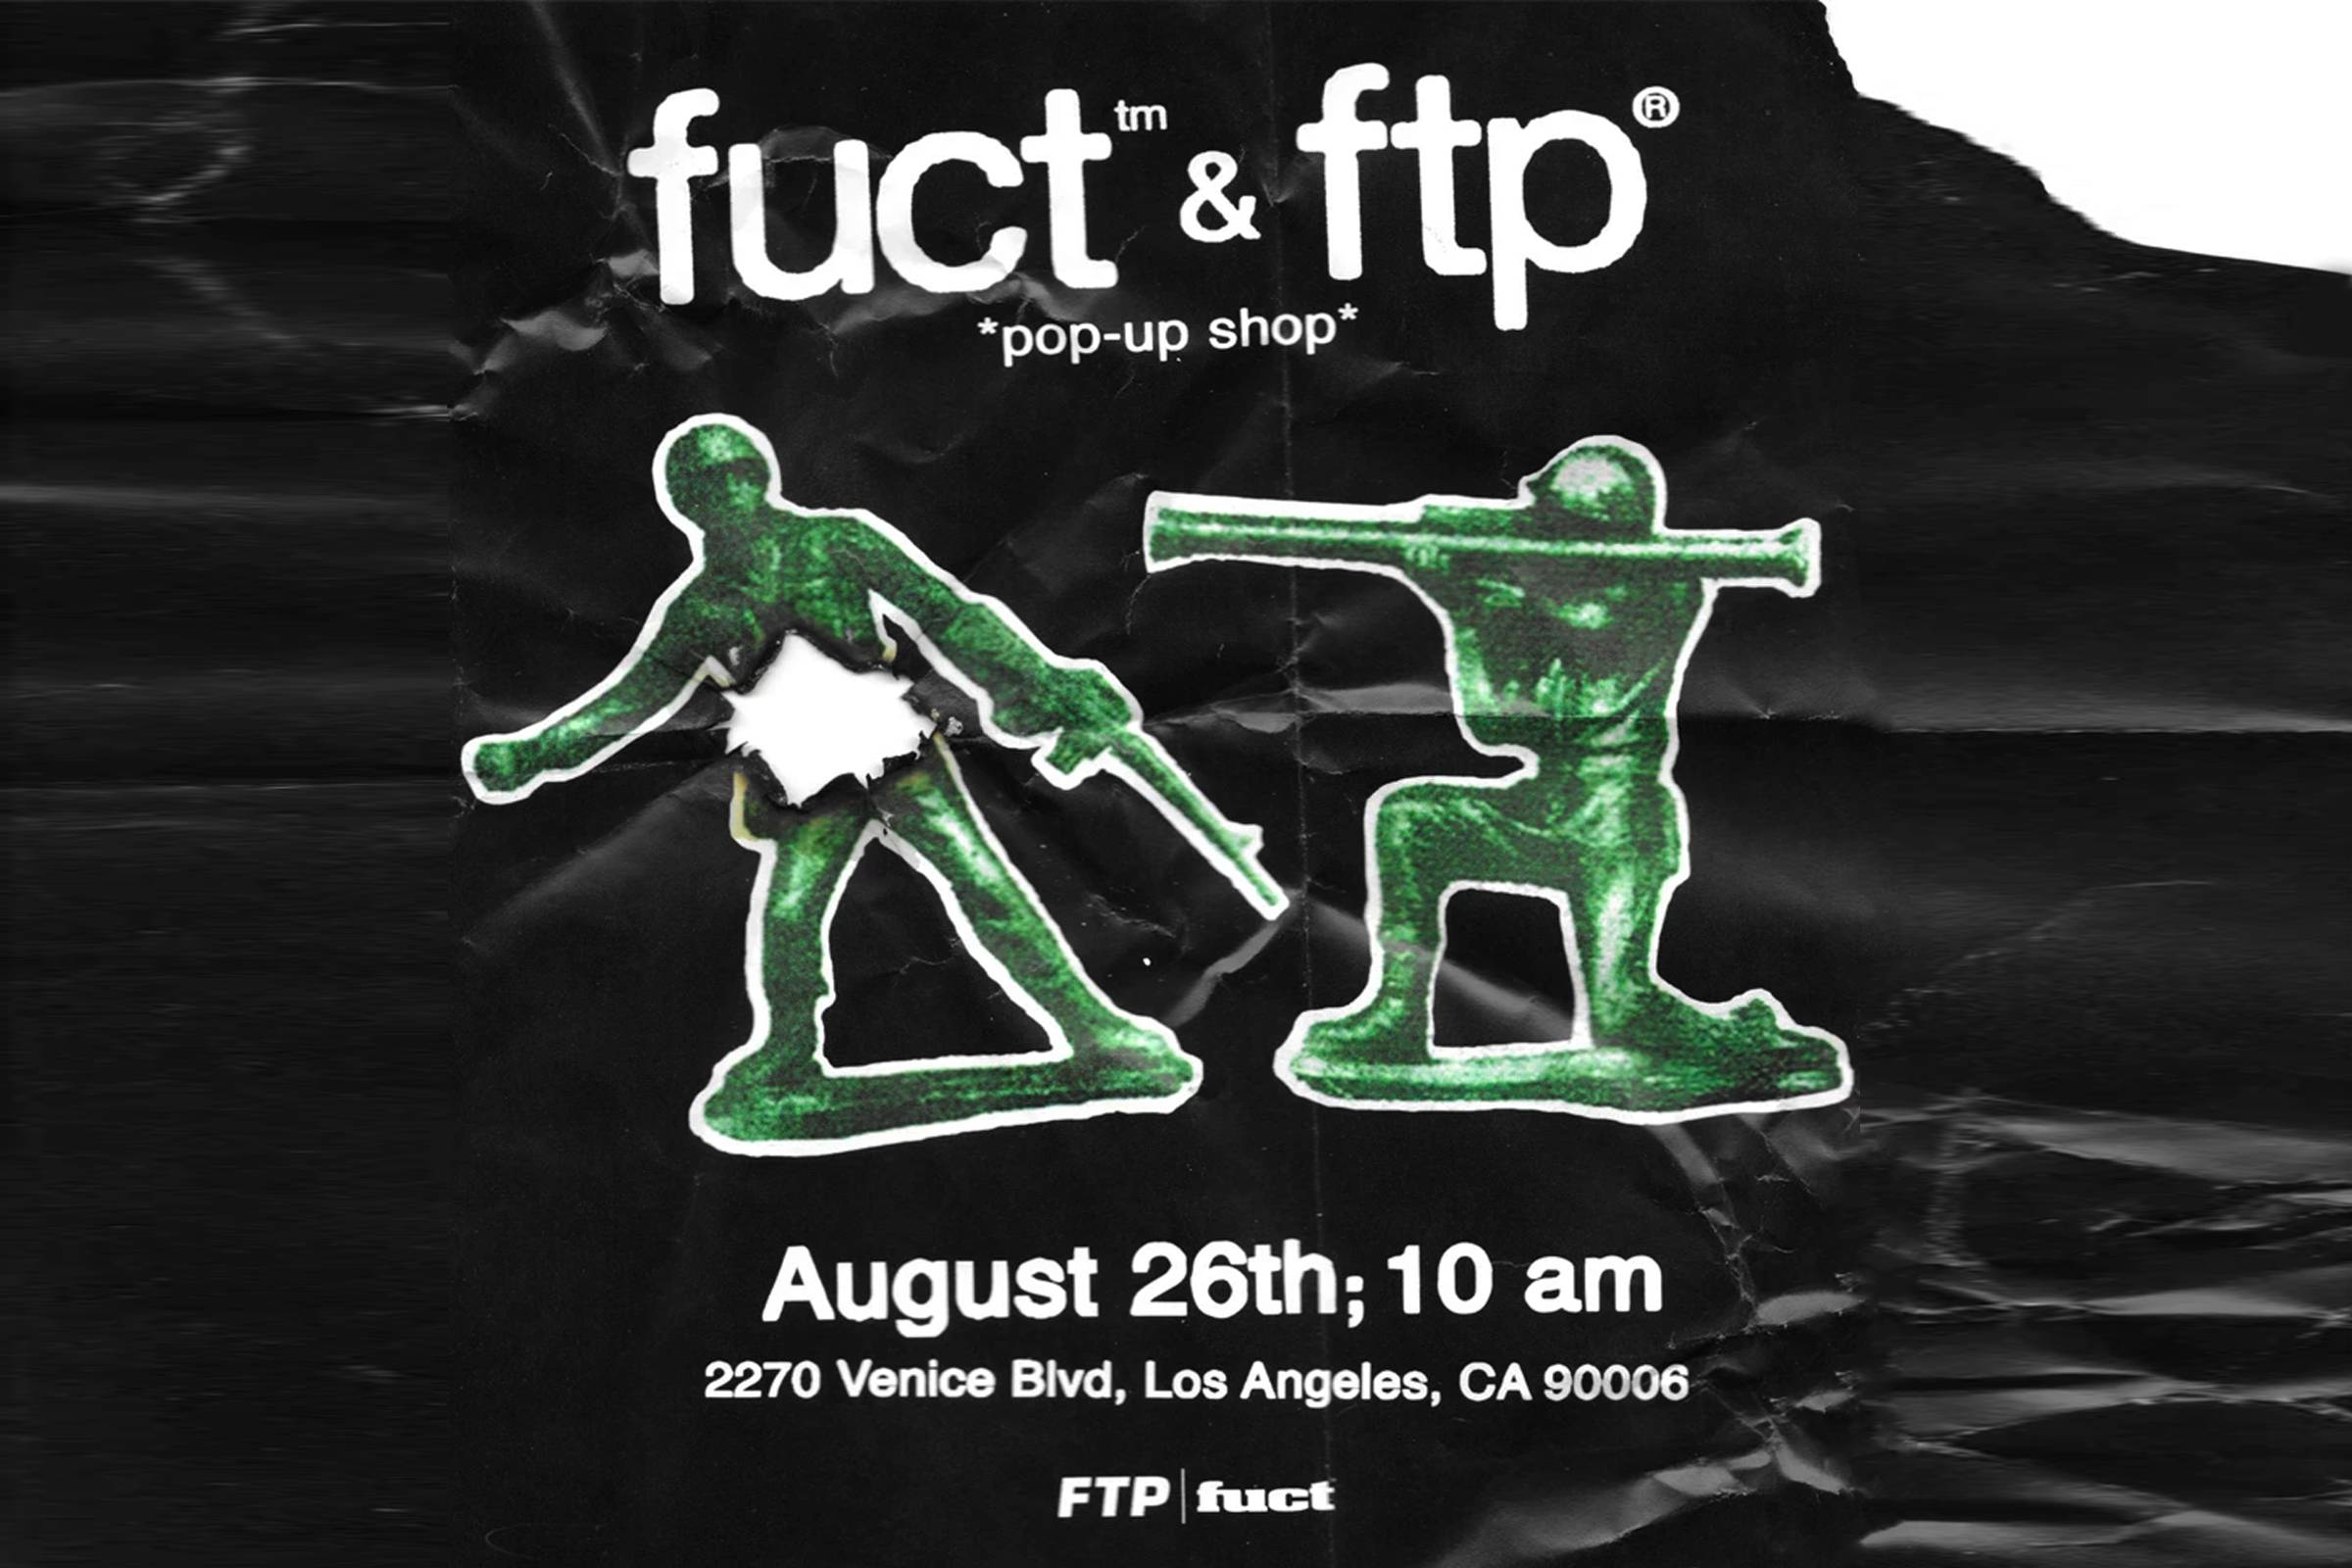 Post from a FTP x Fuct collaboration release event in 2017.